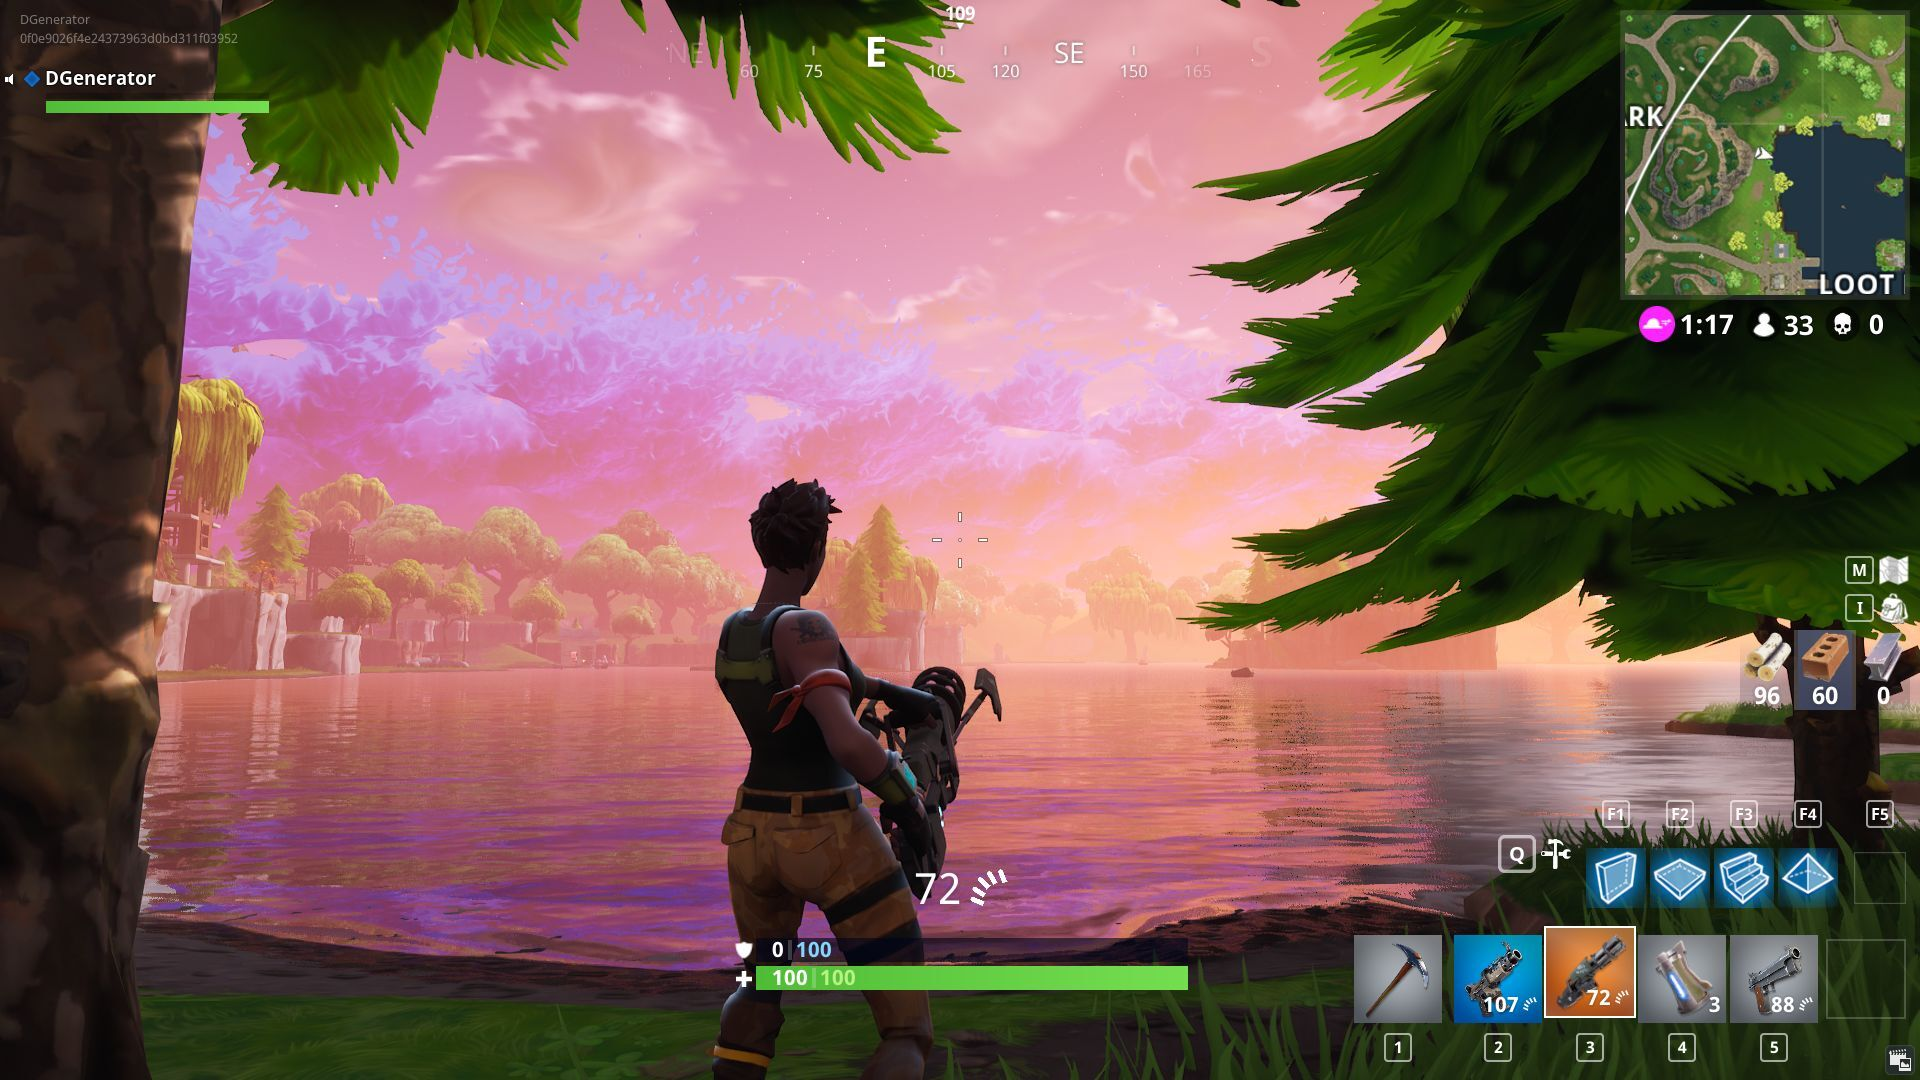 Fortnite: Learn about the battle royale video game sweeping the nation